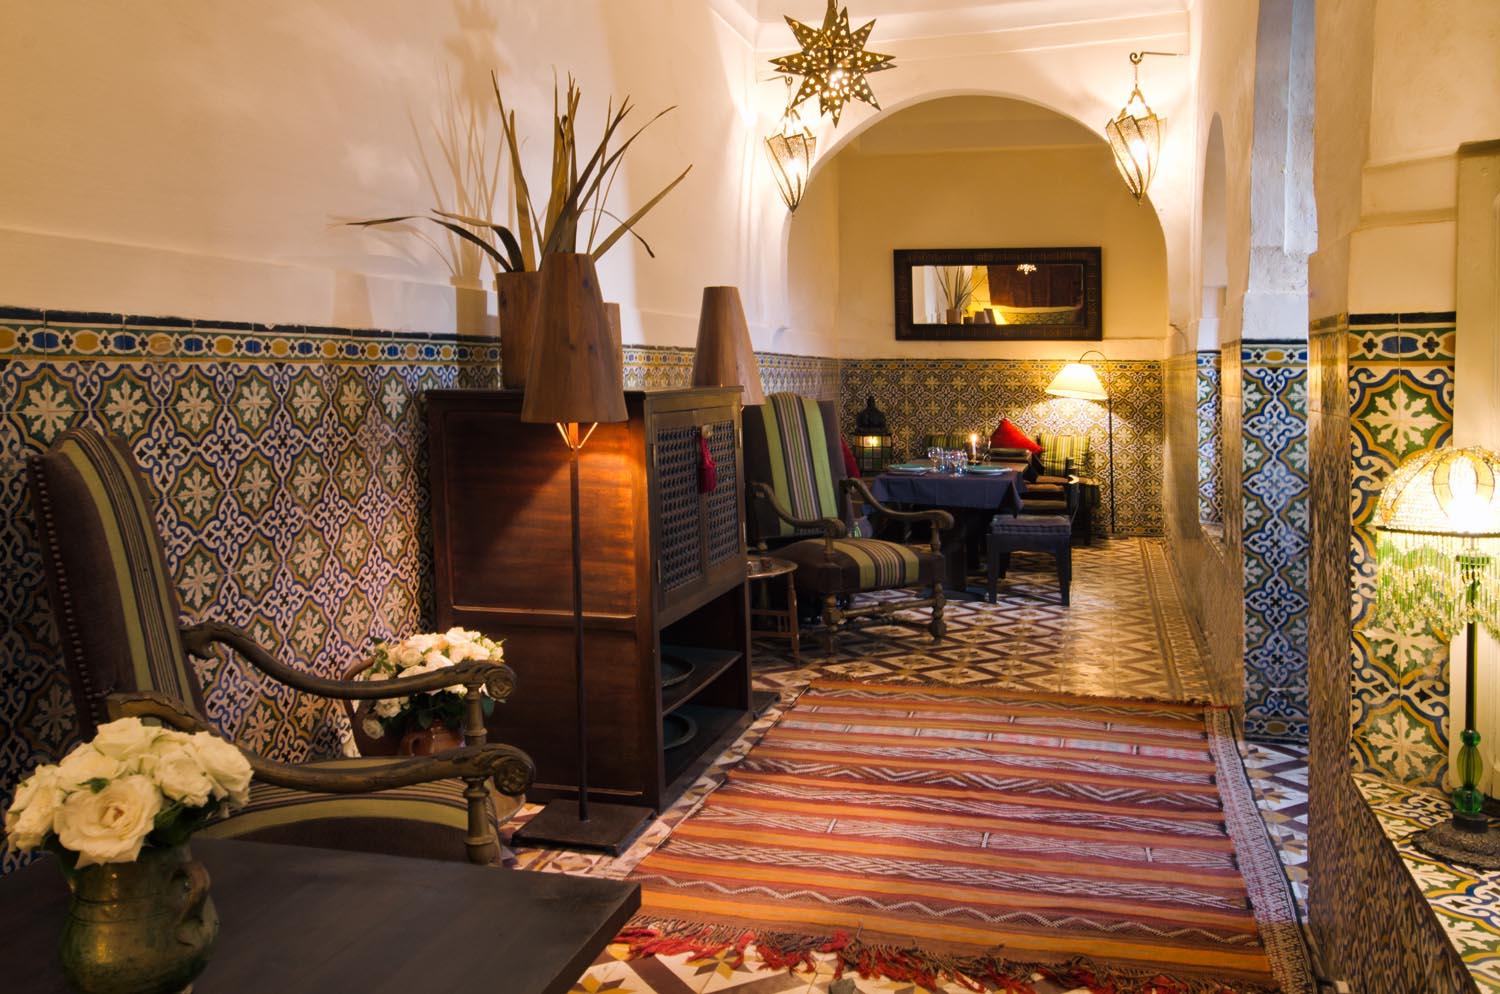 Riad vert location. book riad vert today with hip marrakech ...